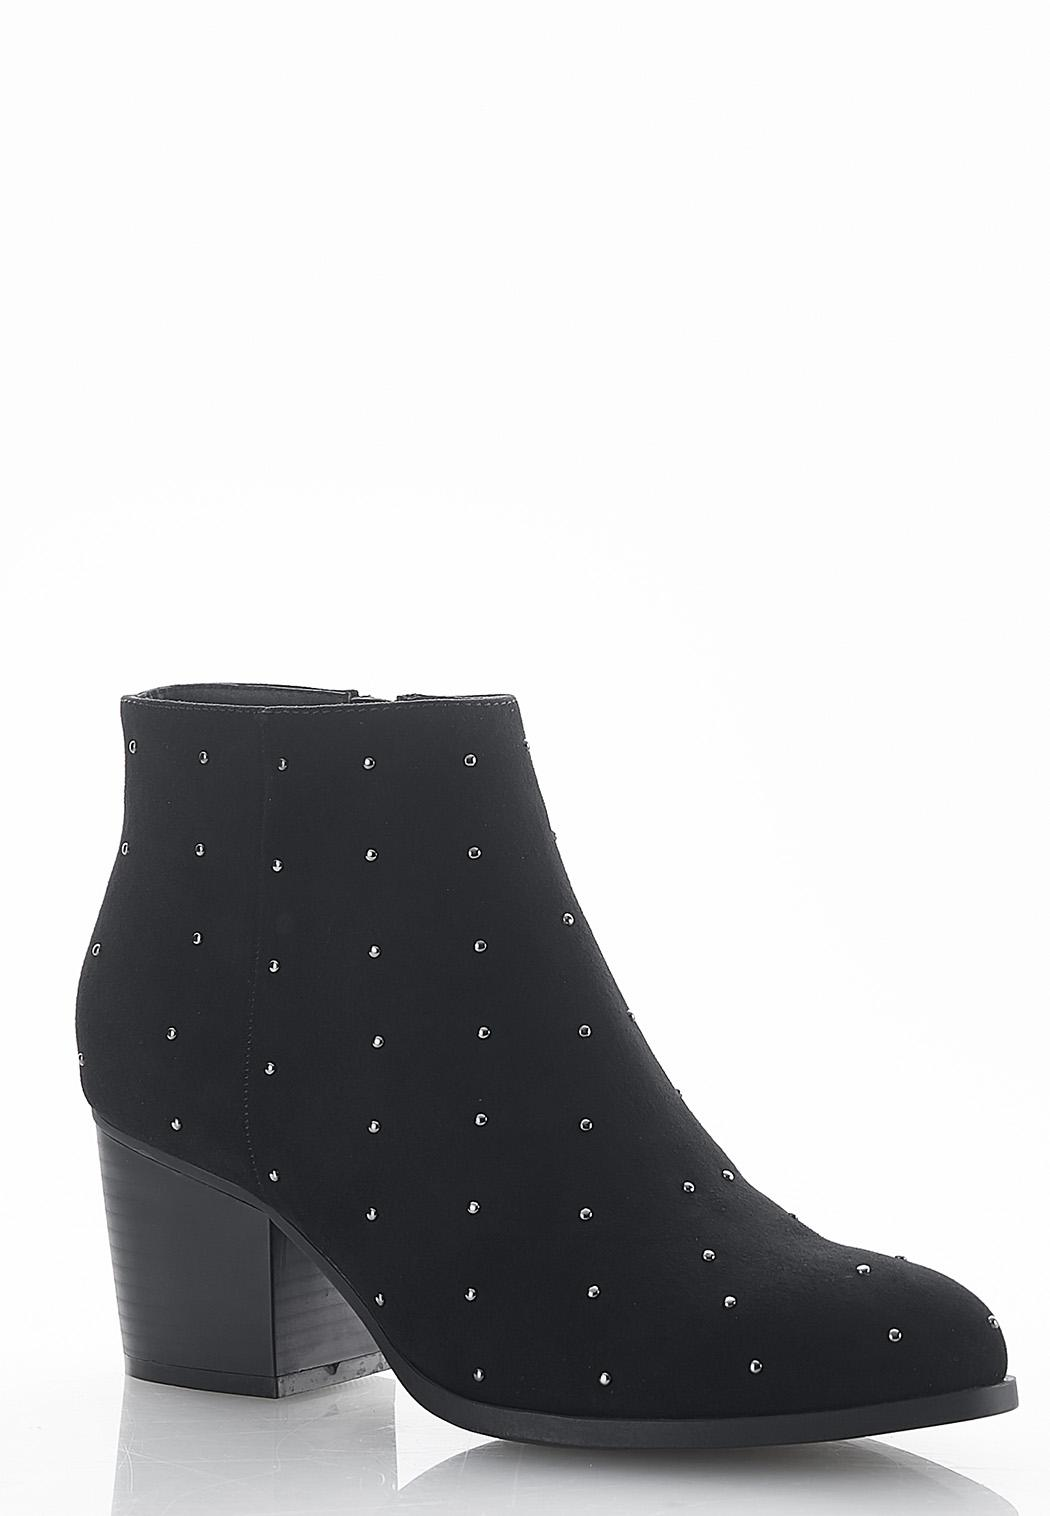 4c5fbed5e Pin Stud Ankle Boots alternate view · Pin Stud Ankle Boots